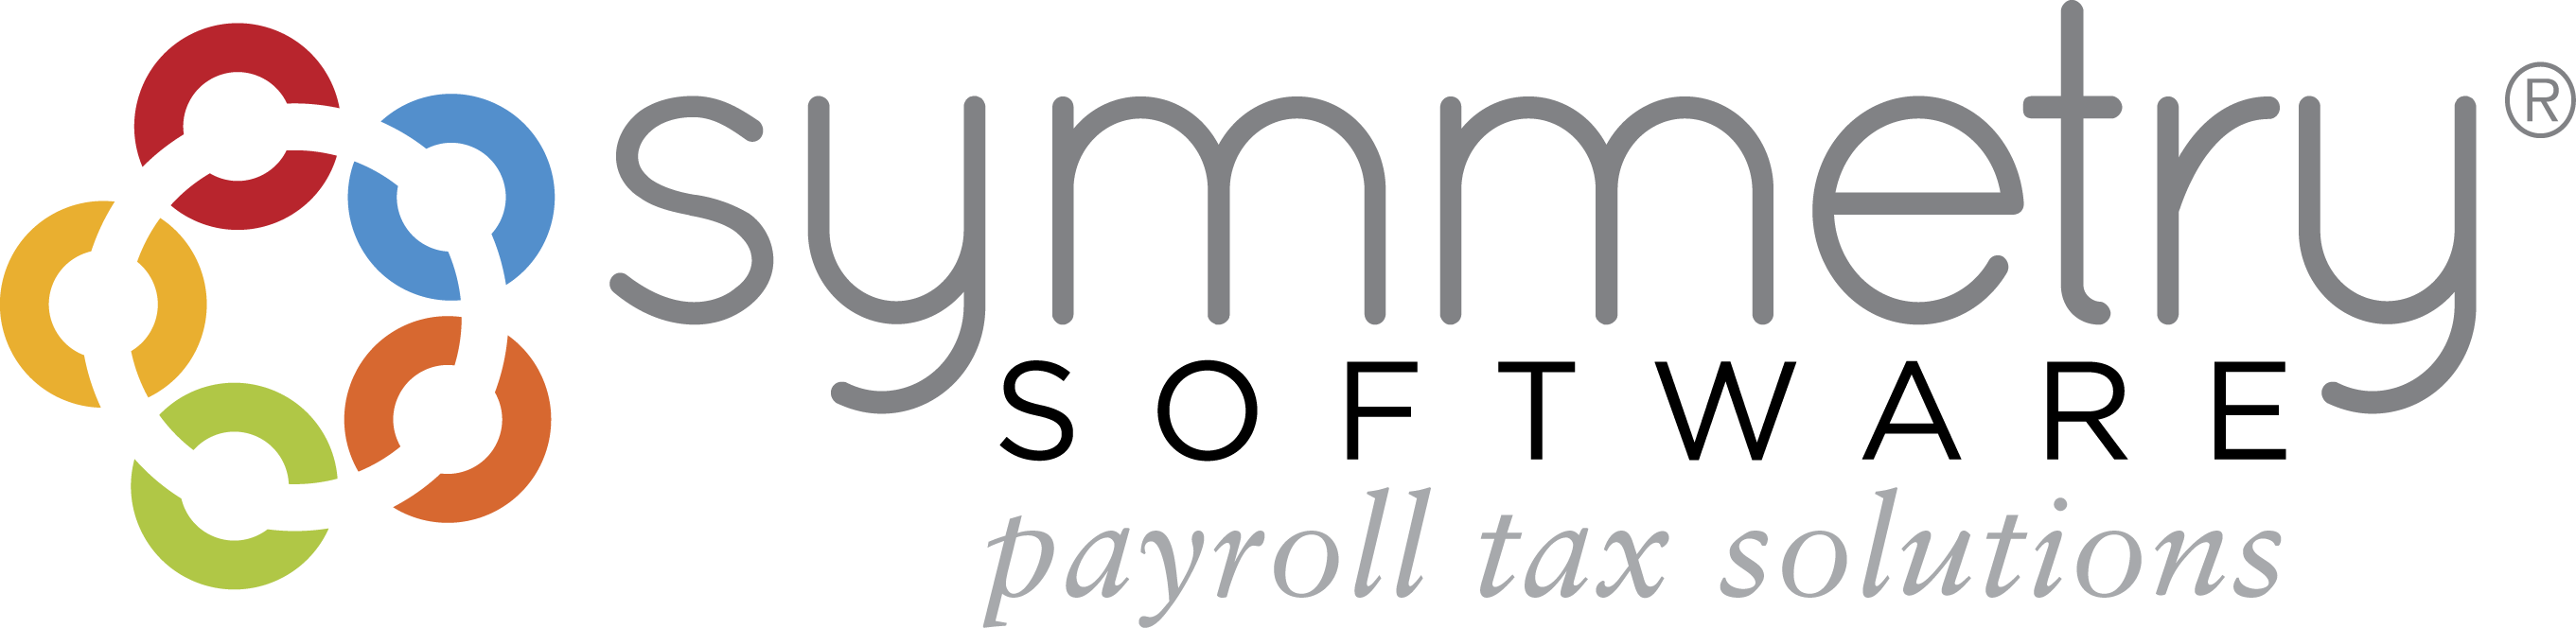 Symmetry softwares jesse canfield passes fundamental payroll symmetry software specialists in payroll withholding tax solutions for the large employers and payroll providers xflitez Choice Image